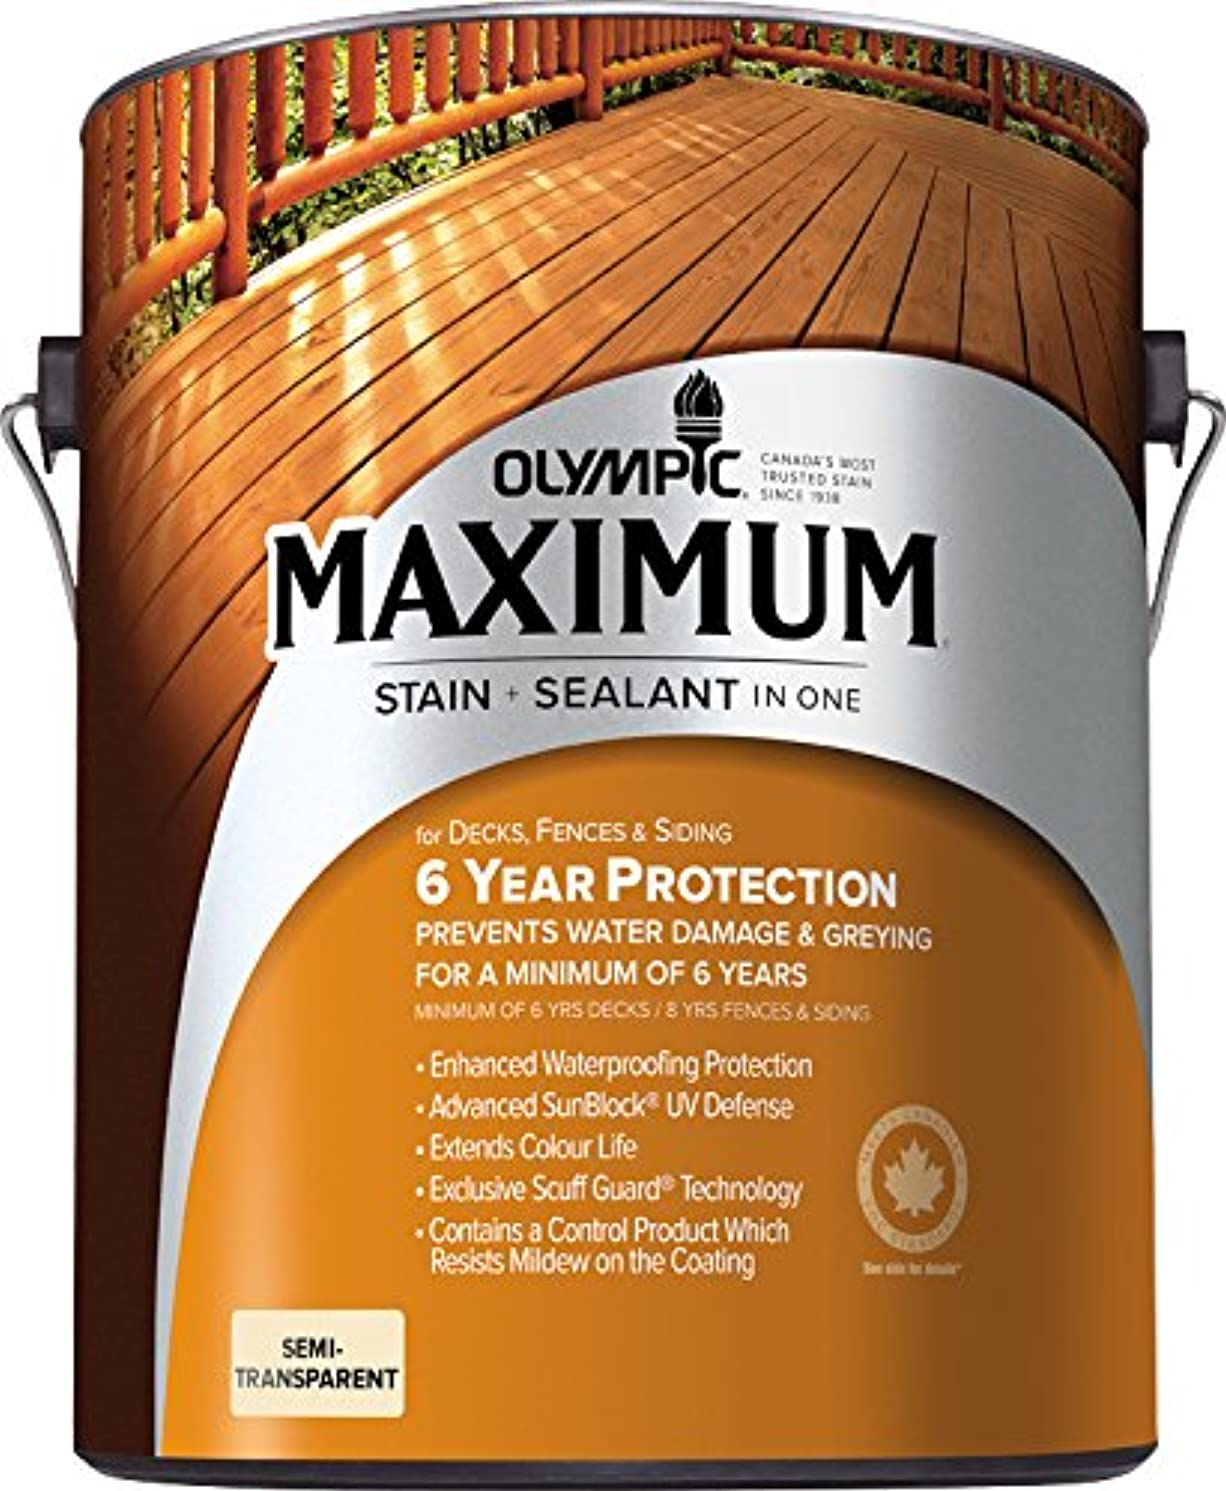 Olympic Stain 79552 Maximum Wood Stain and Sealer, 1 Gallon, Semi-Transparent Stain, Redwood